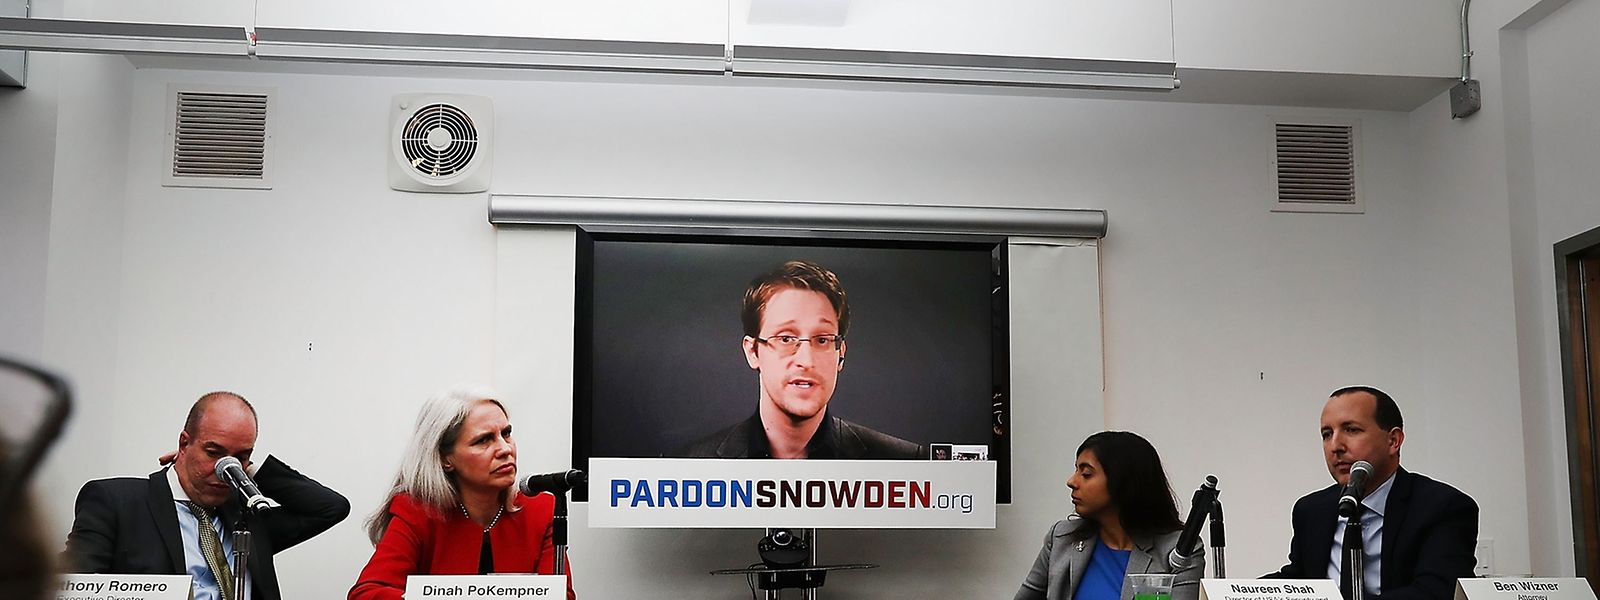 Edward Snowden wurde der Pressekonferenz in New York per Video zugeschaltet.